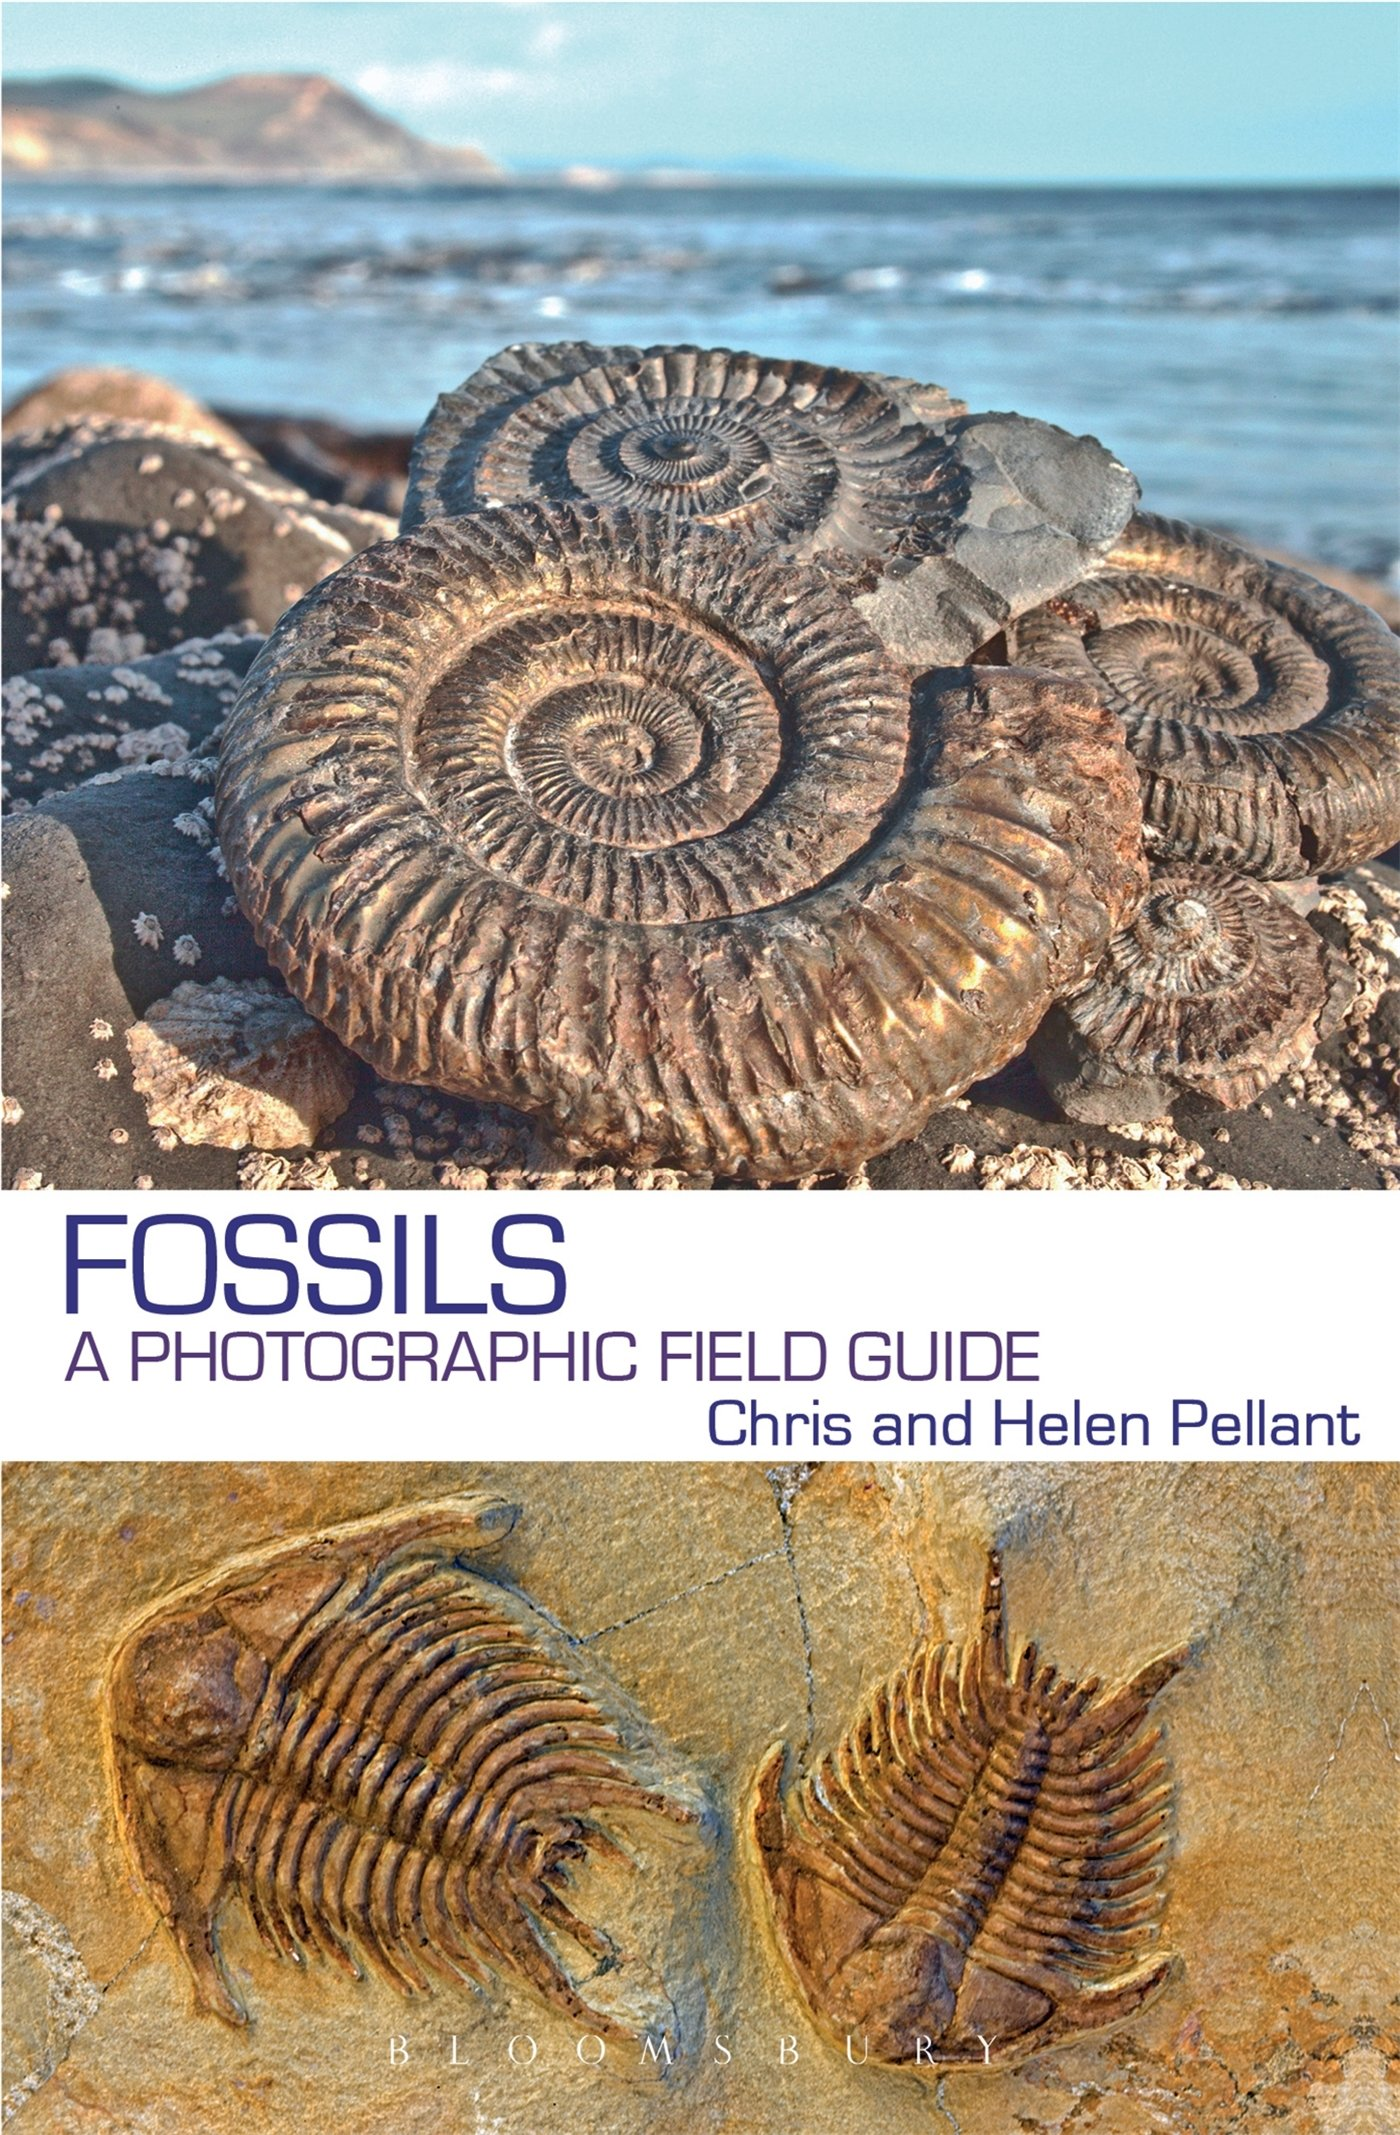 Image OfFossils: A Photographic Field Guide